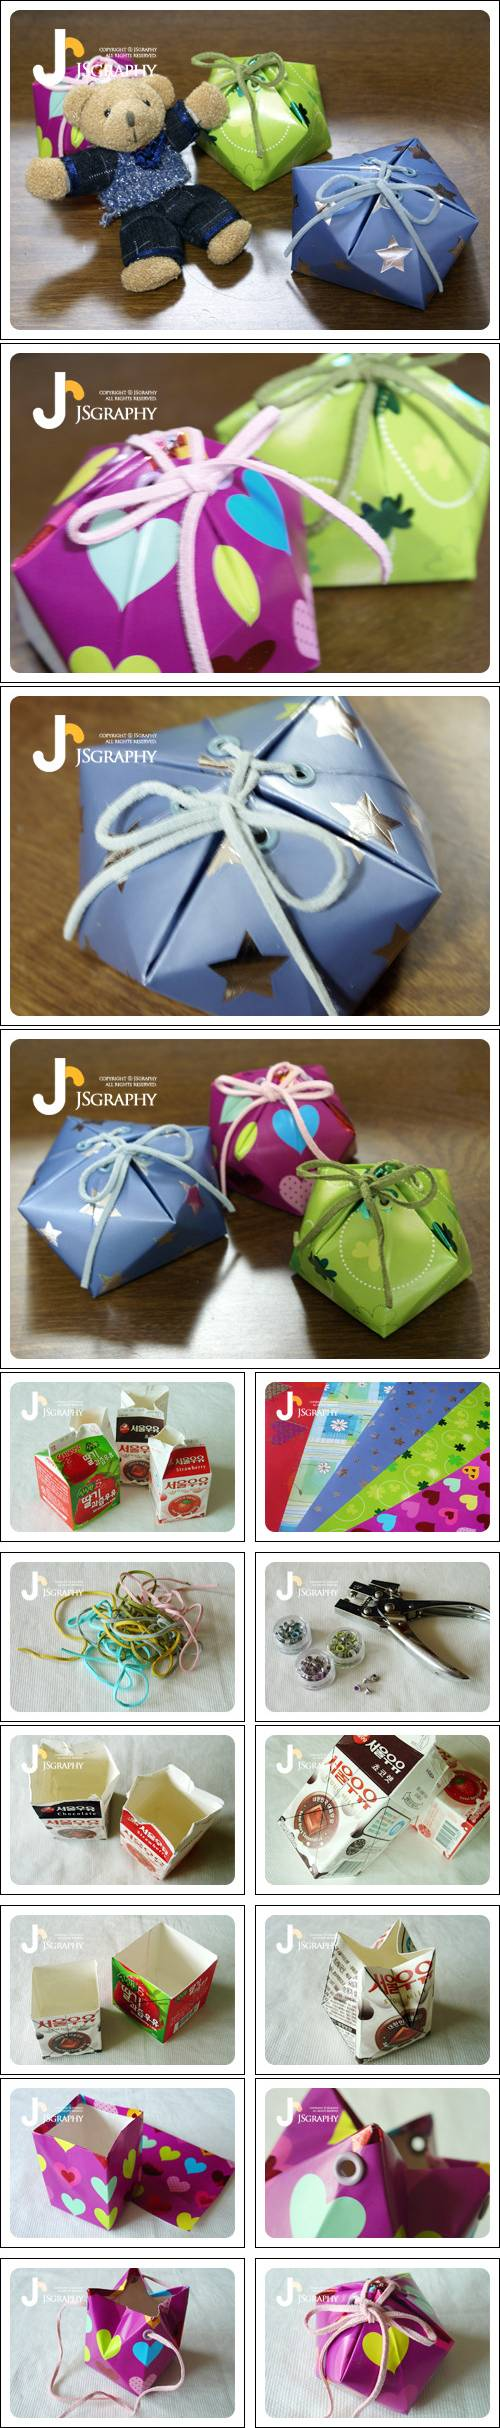 Diy milk carton gift box boxes and gifts tutorials pinterest diy milk carton gift box solutioingenieria Gallery